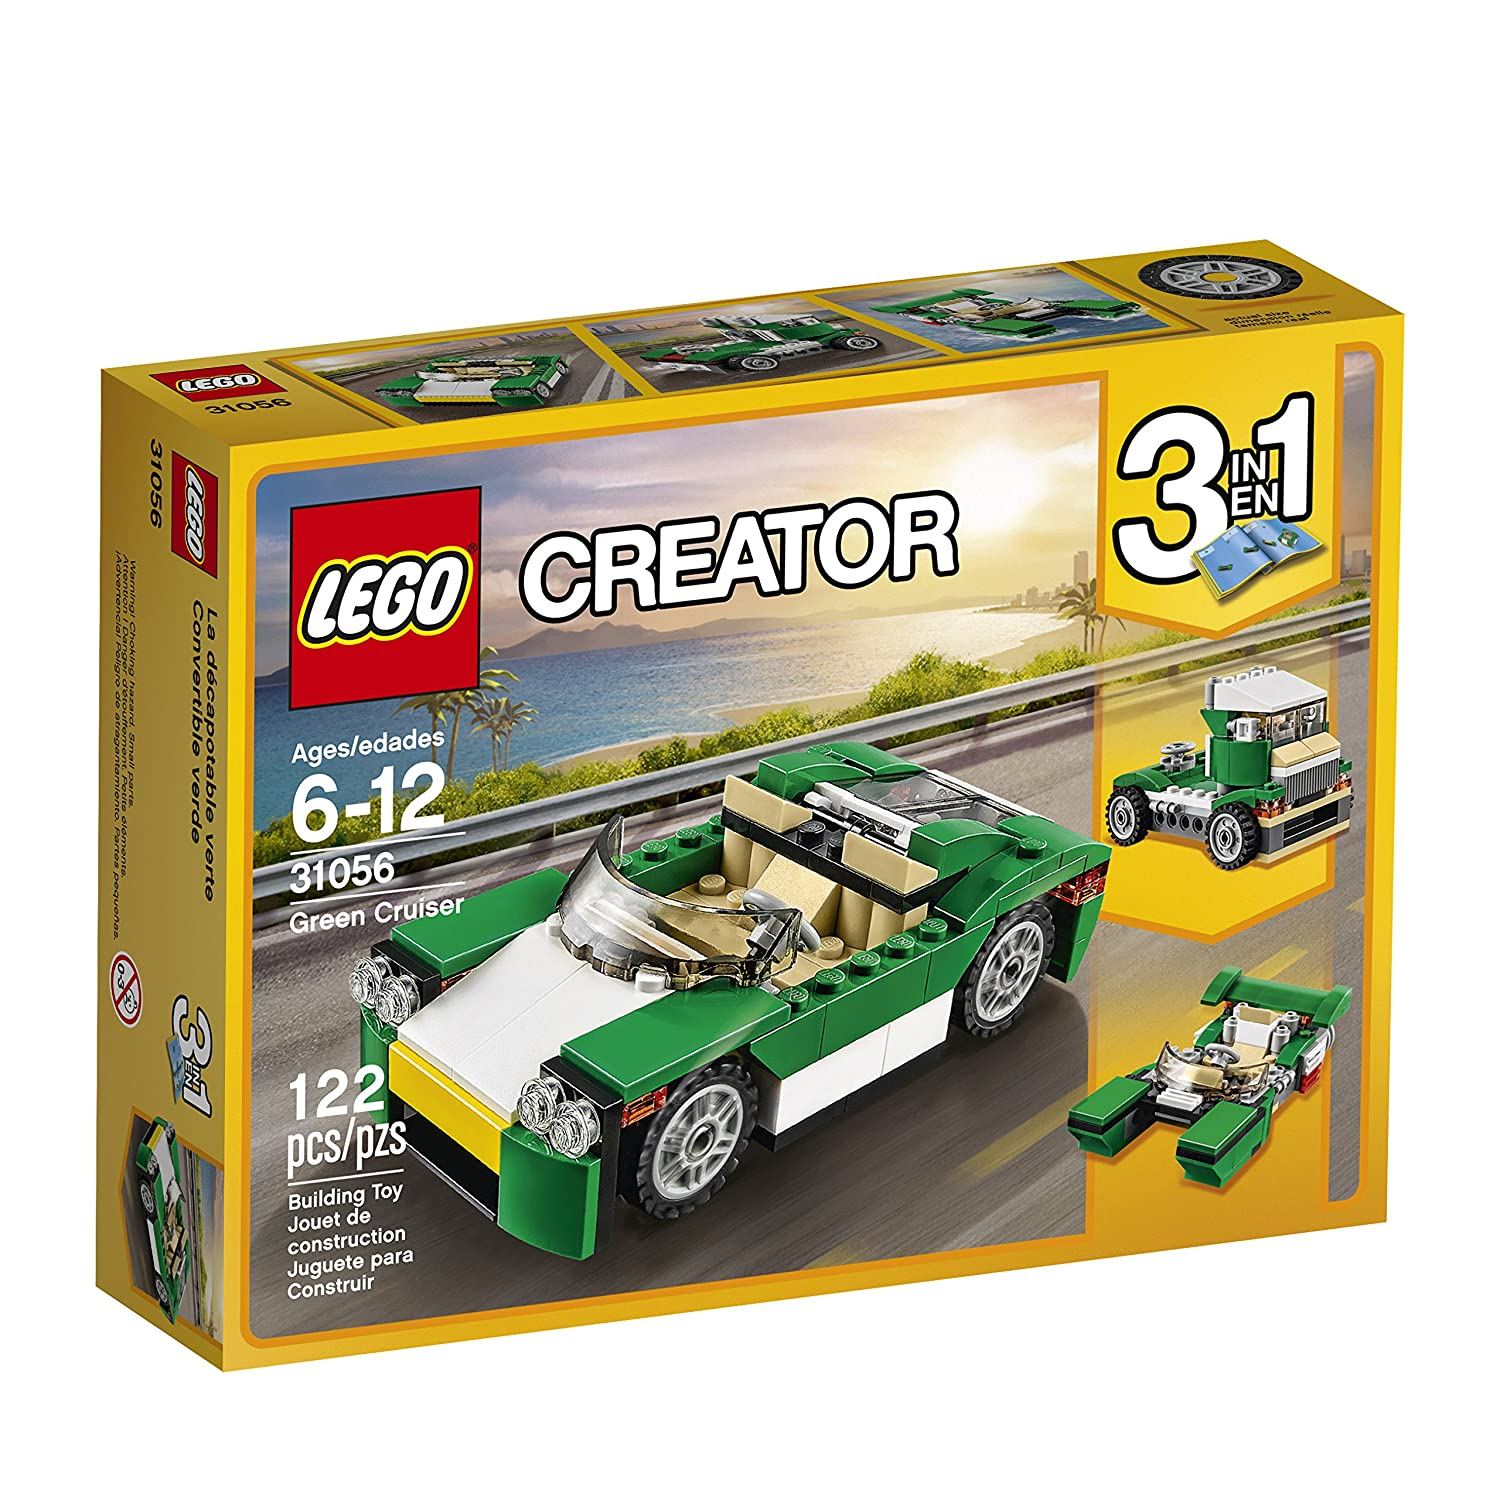 $9.67 (was $12.99) LEGO 6175236 Creator Green Cruiser 31056 Building Kit